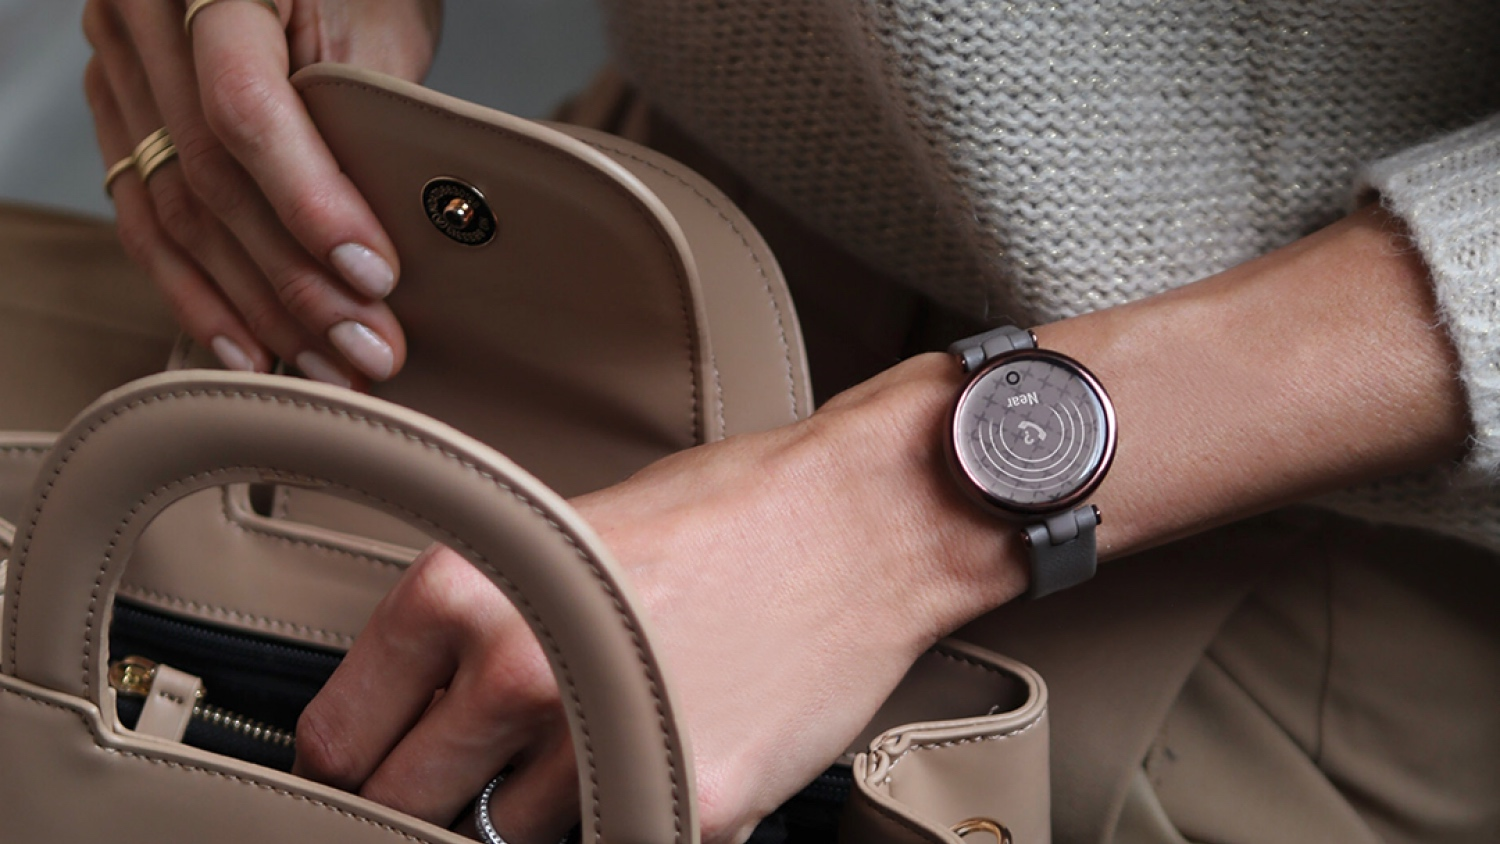 Best wearables for women: Smartwatches, trackers and running watches compared